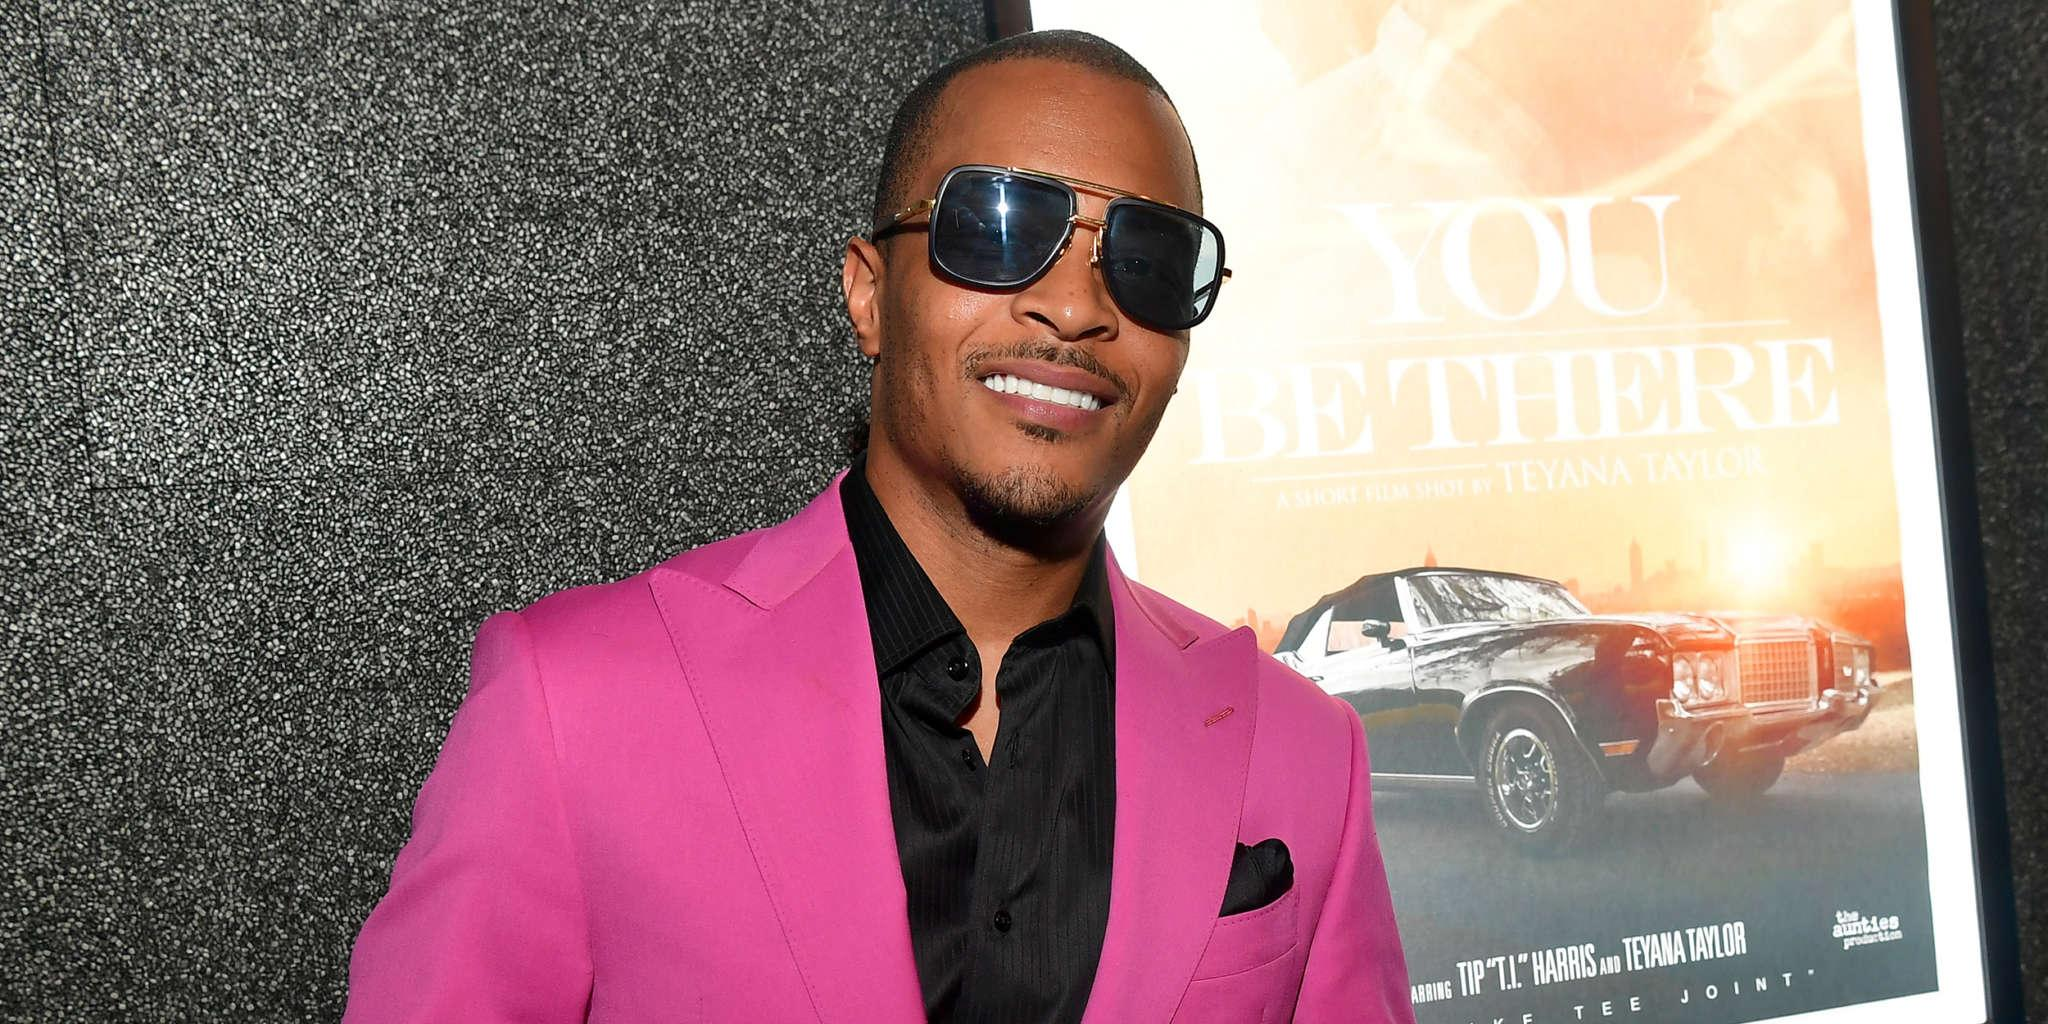 T.I. Shares Some Pics Of The New Custom Made Interior Of The Crib In LA - Fans Are In Awe